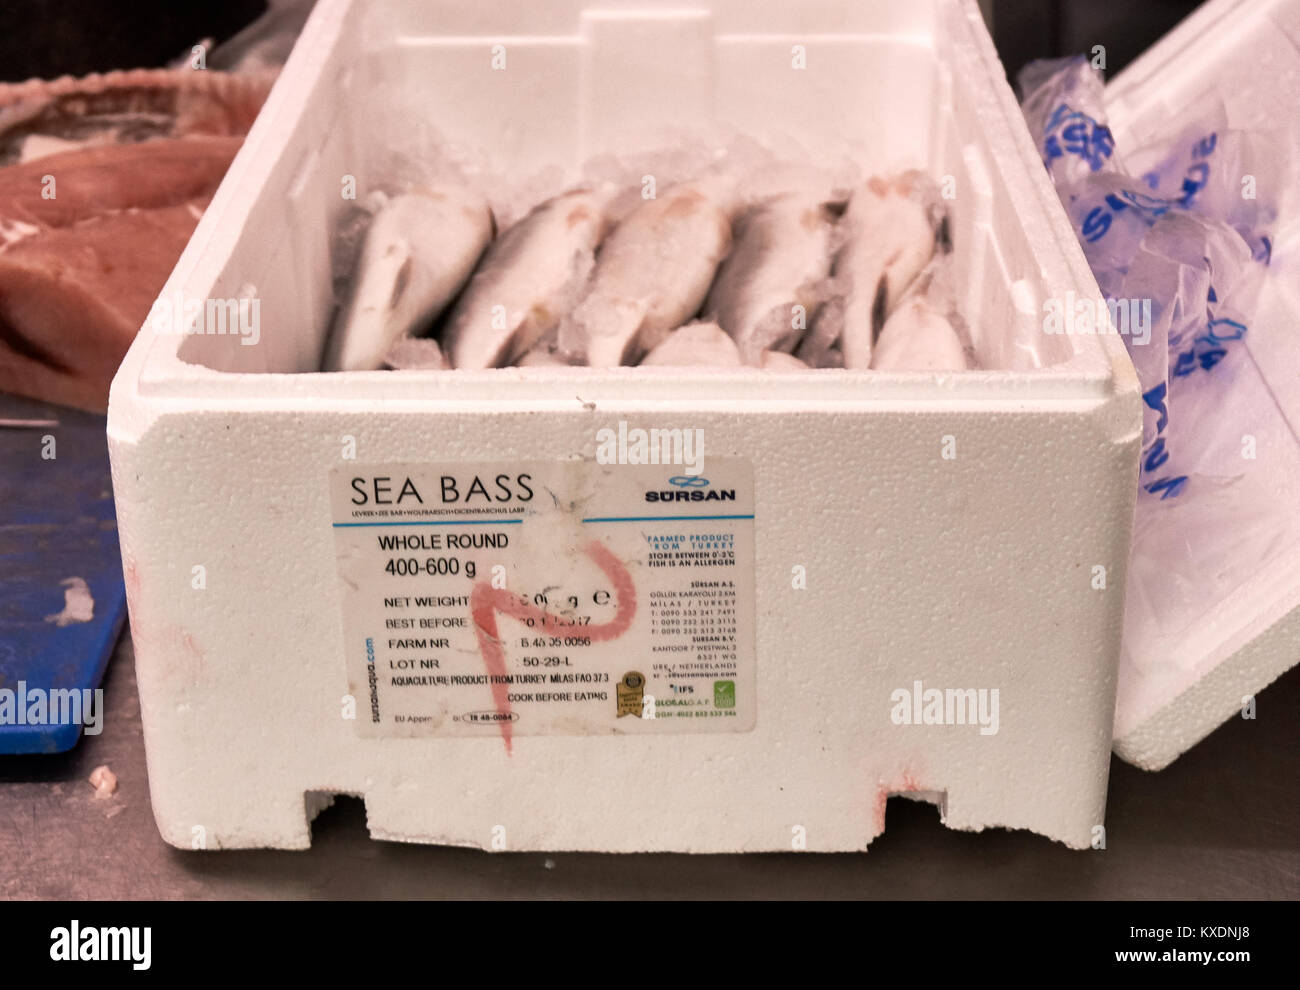 Farmed Turkish sea bass packed in a styrofoam box for sale at a